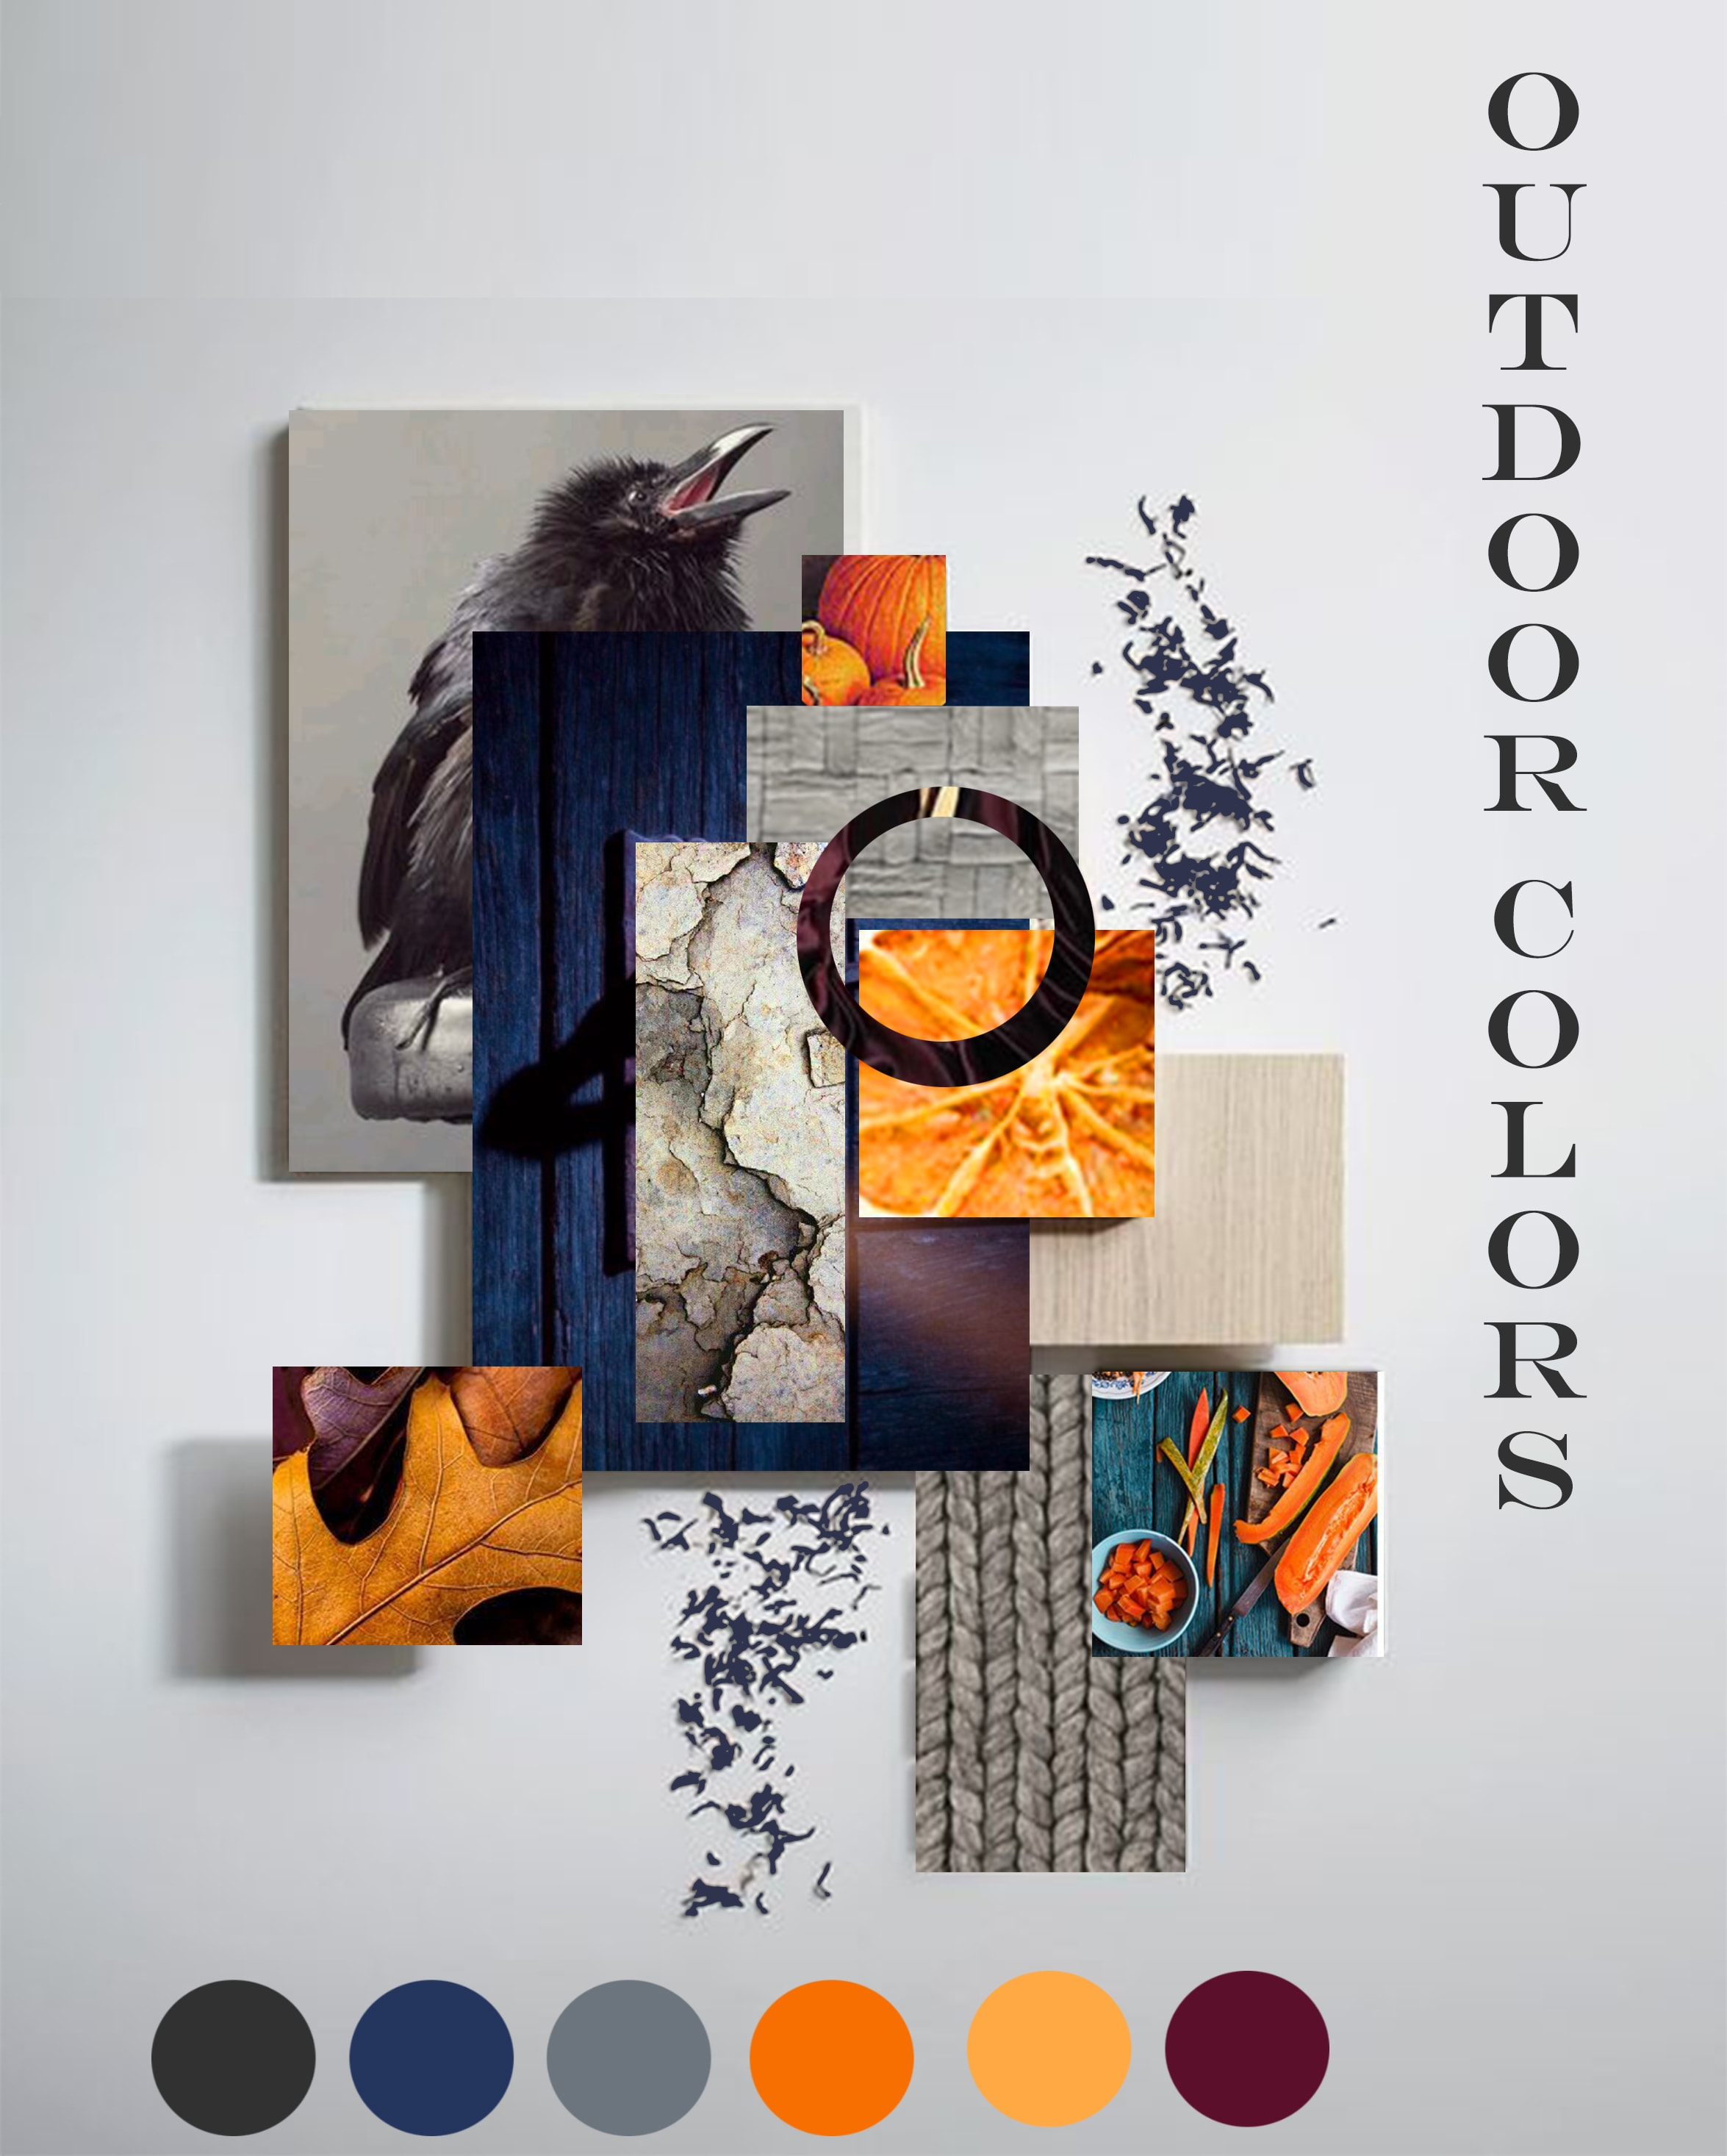 Design Mood Board Depicting A Color Scheme Or A Whole Story By Mahanoorsial